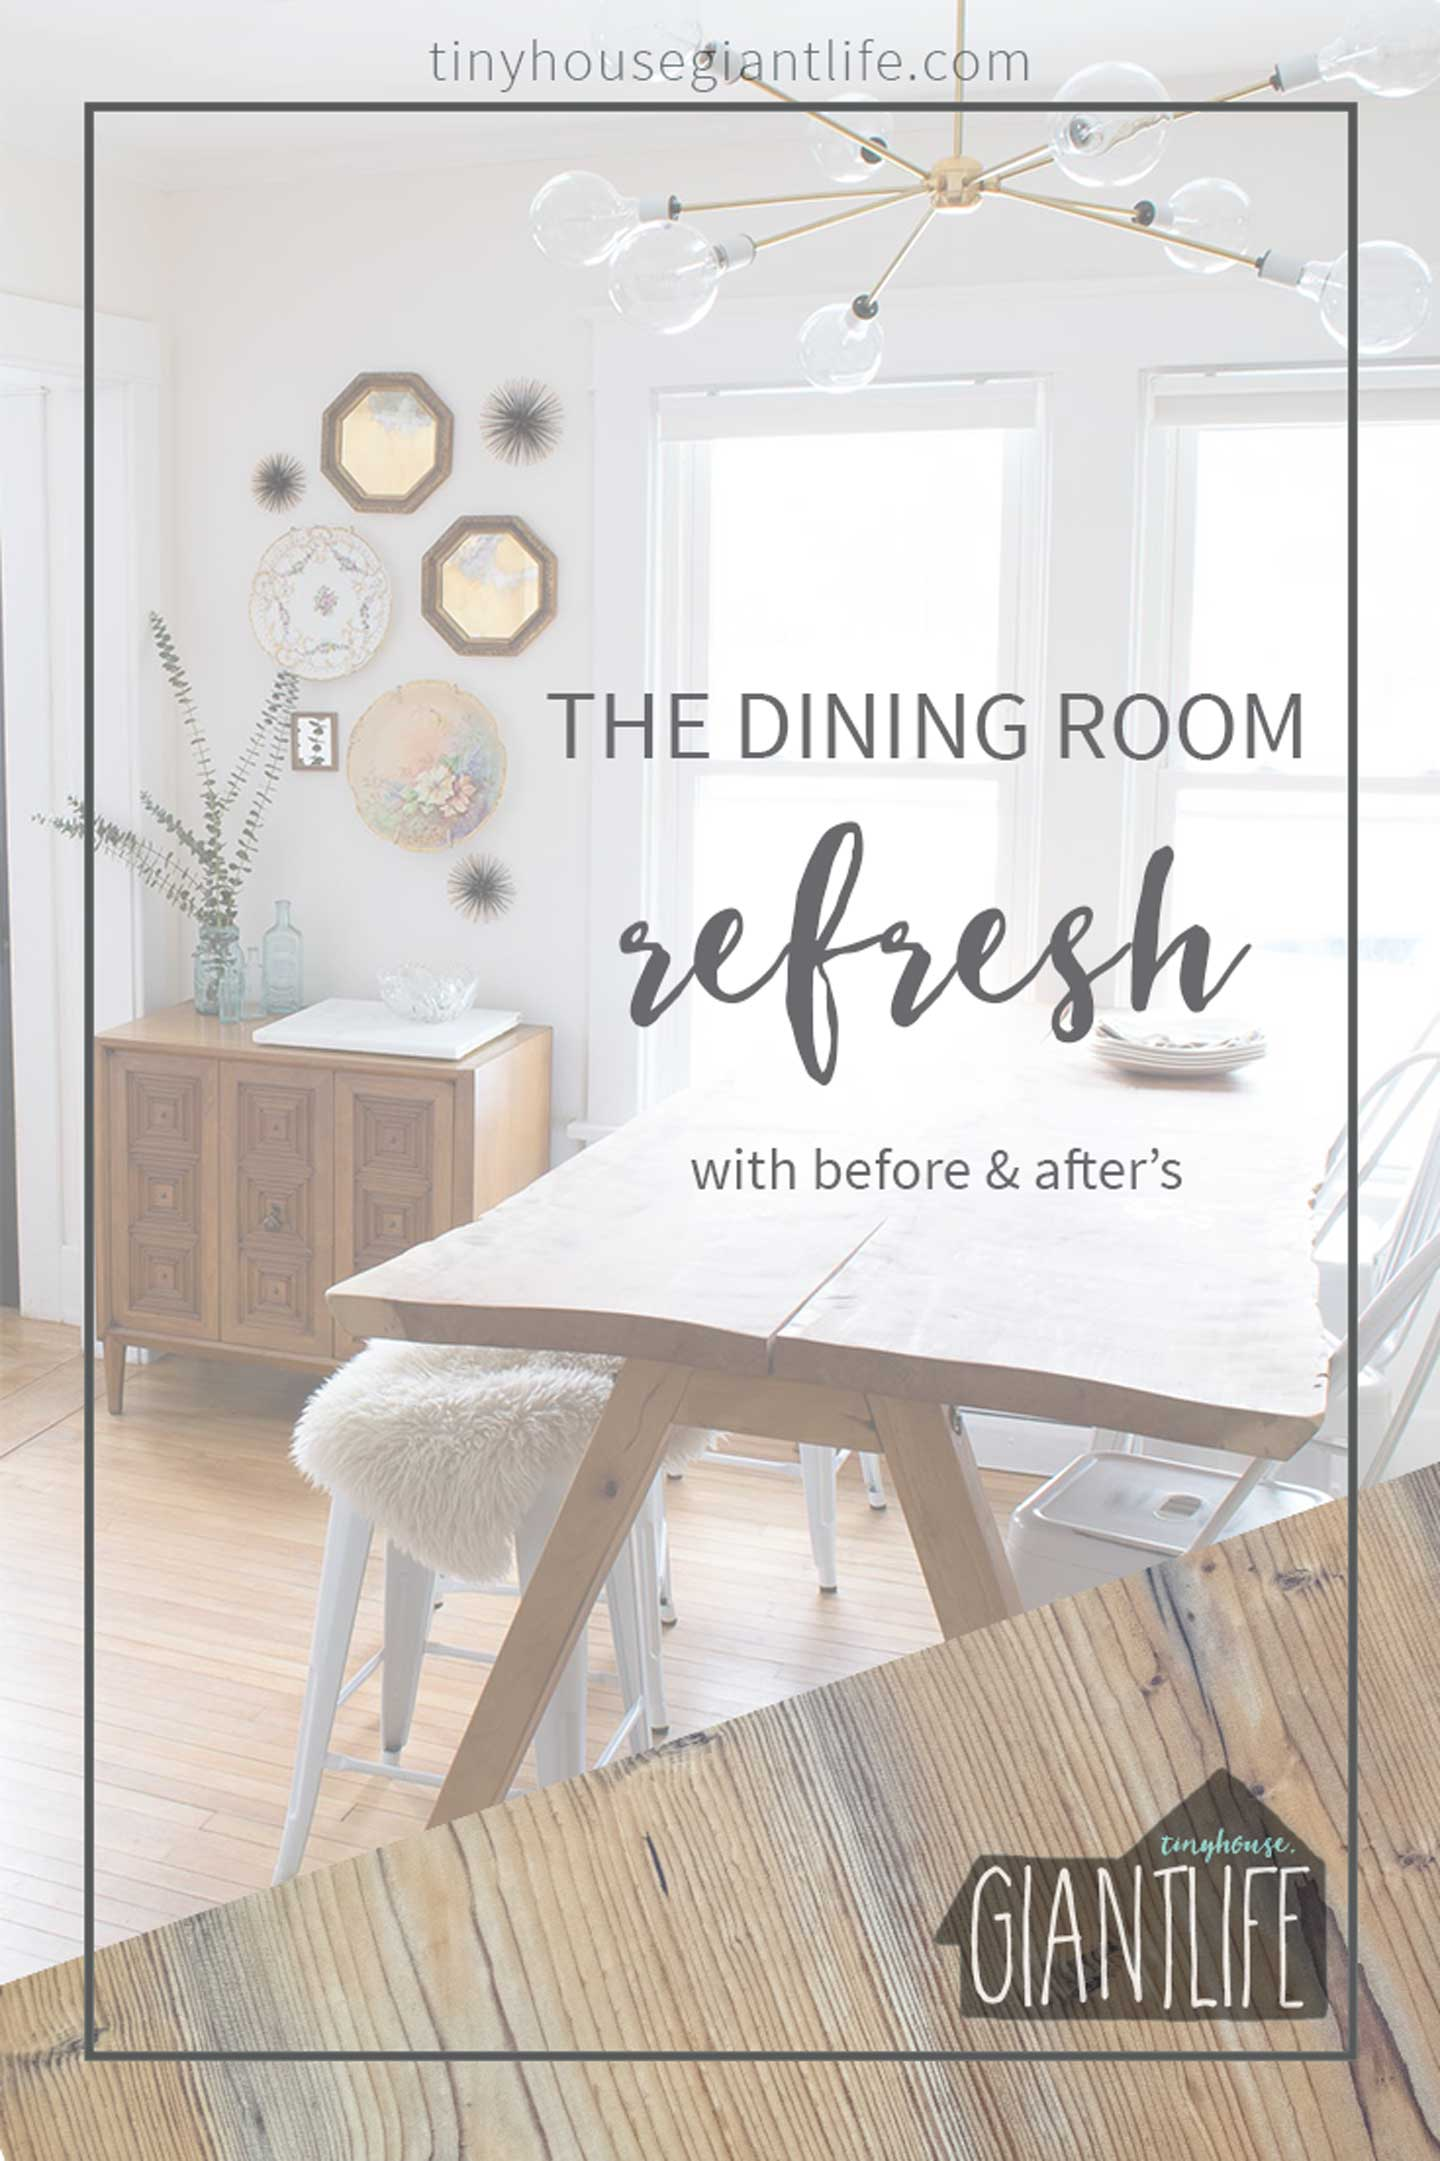 DESIGNING OUR IDEAL DINING ROOM: THE FULL REFRESH